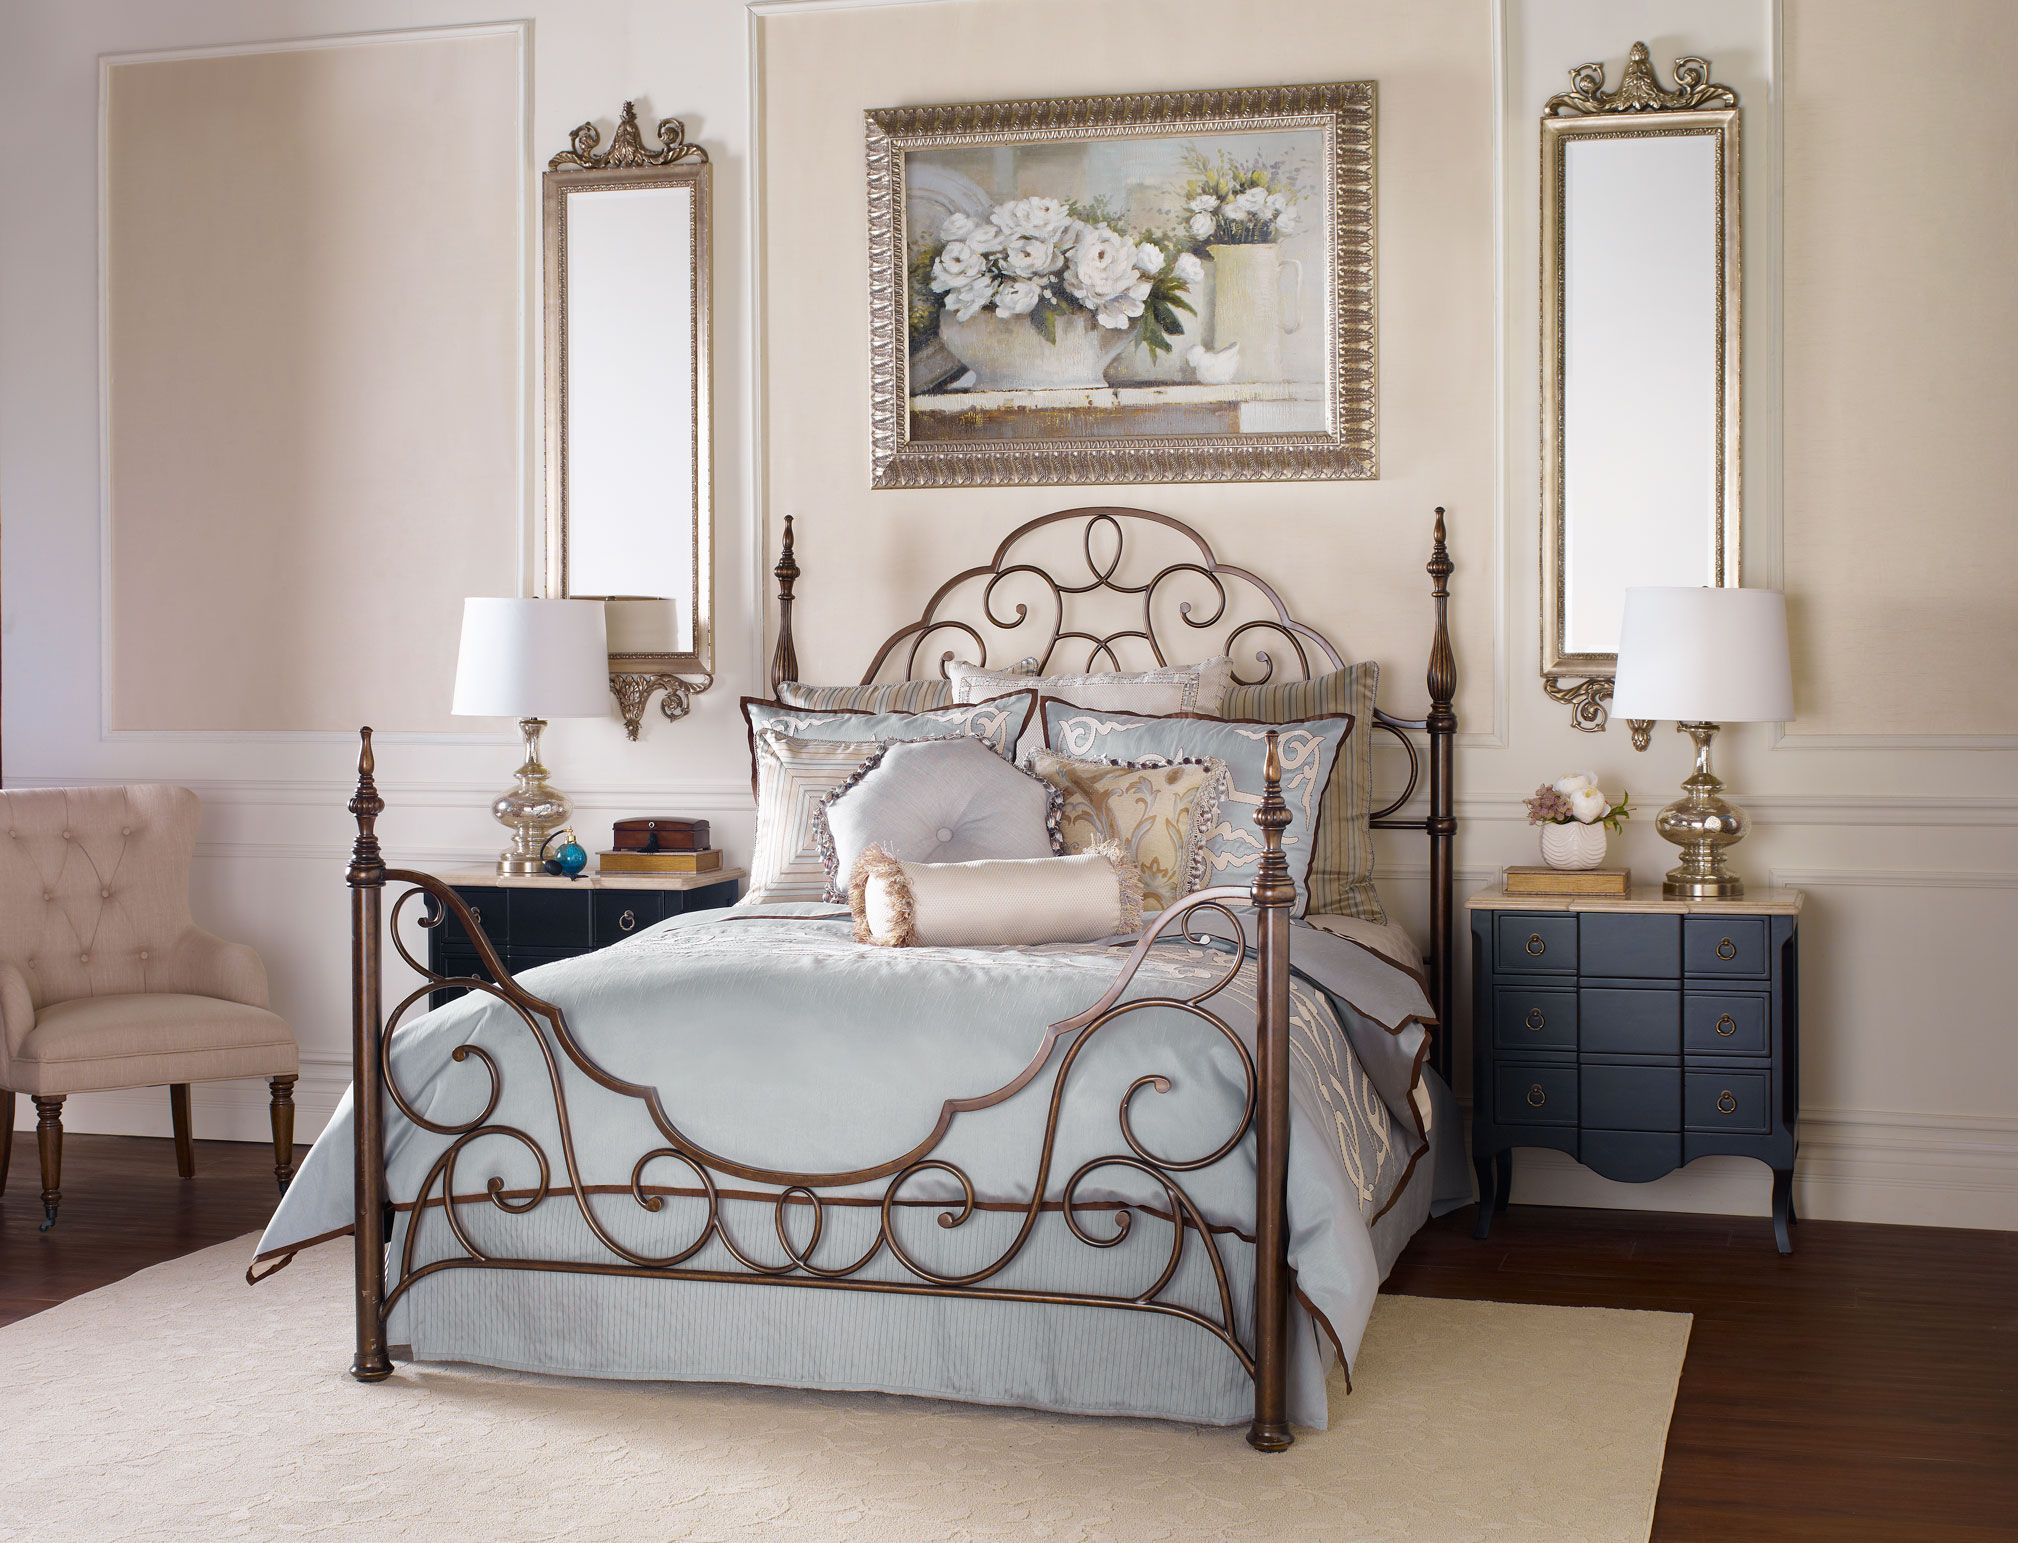 Bombay Co Inc Bedroom Beds Deauville Bed King